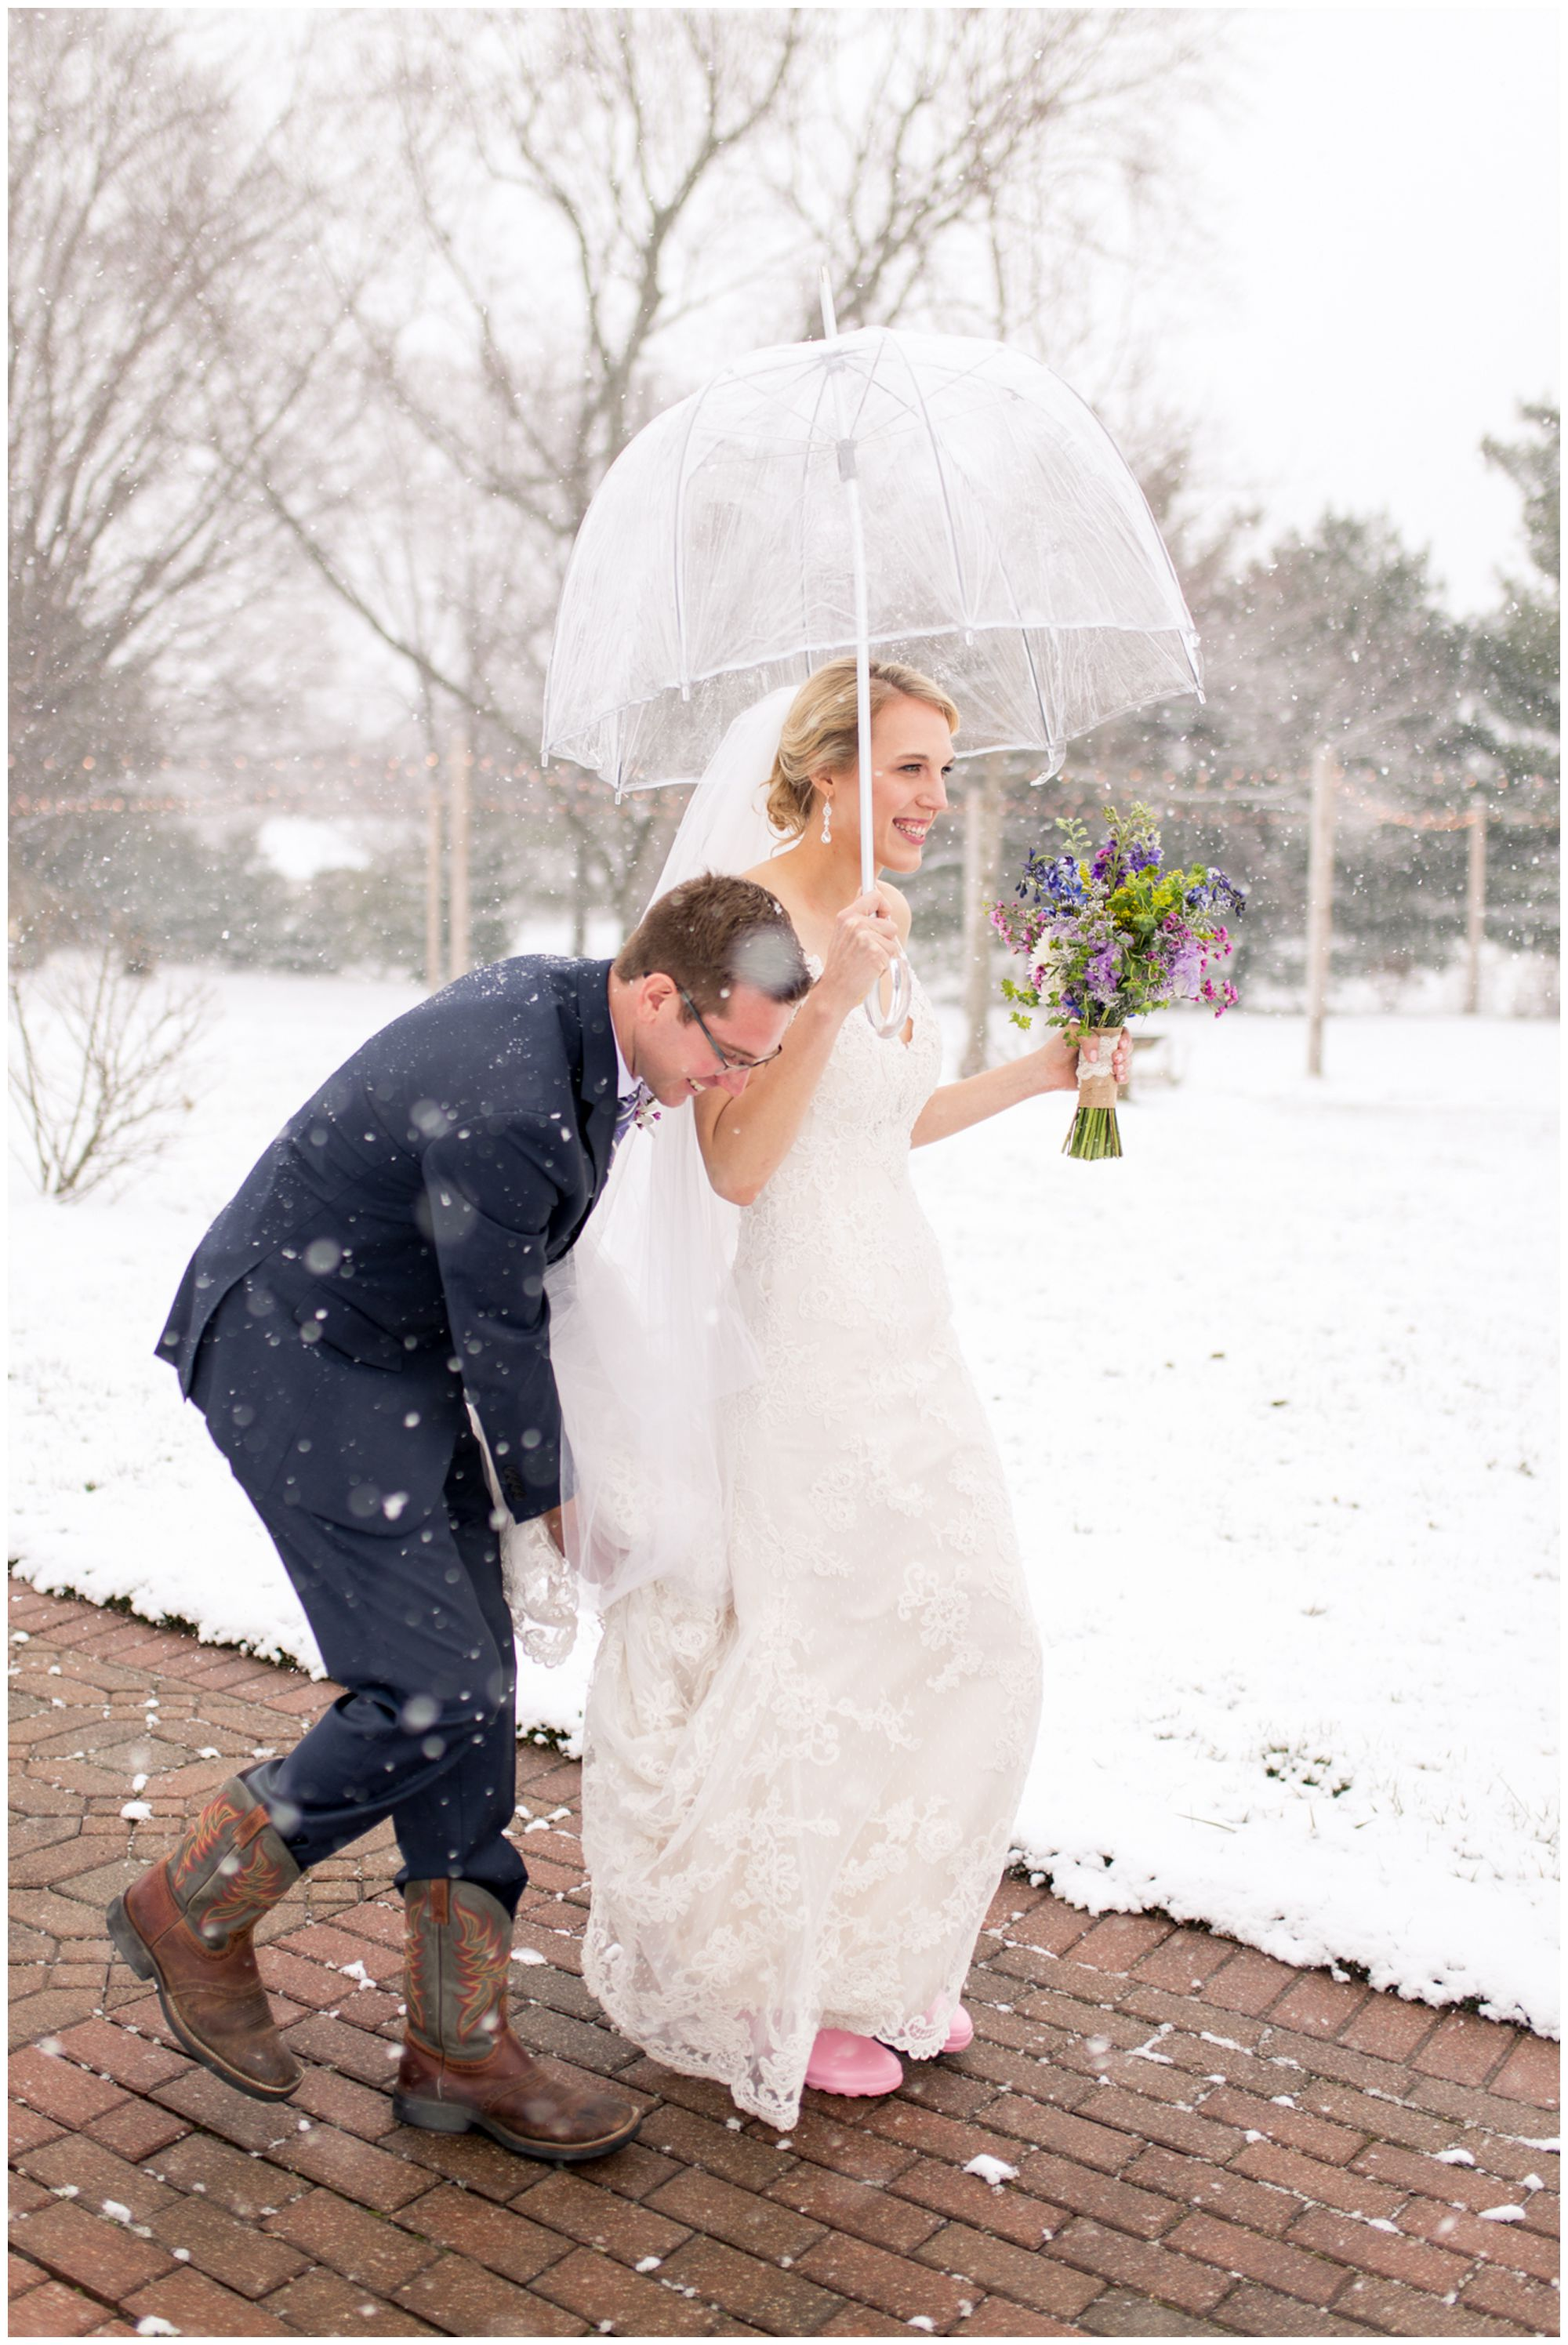 bride and groom walking in snow at Mustard Seed Gardens wedding reception in Noblesville Indiana